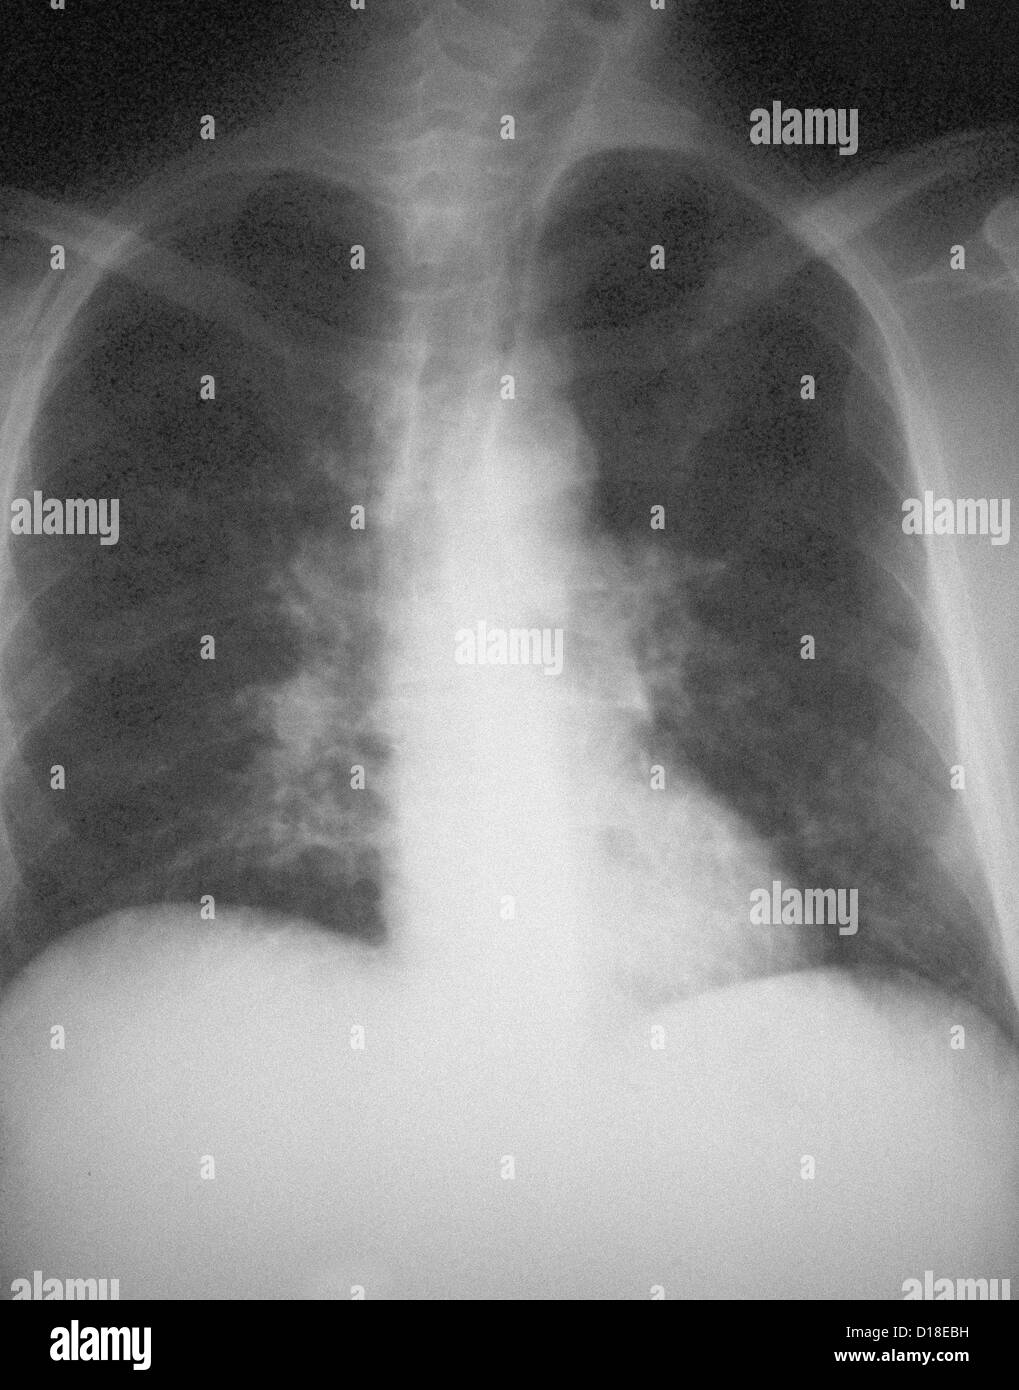 AIDS patient with pneumocystis carinii pneumonia - Stock Image